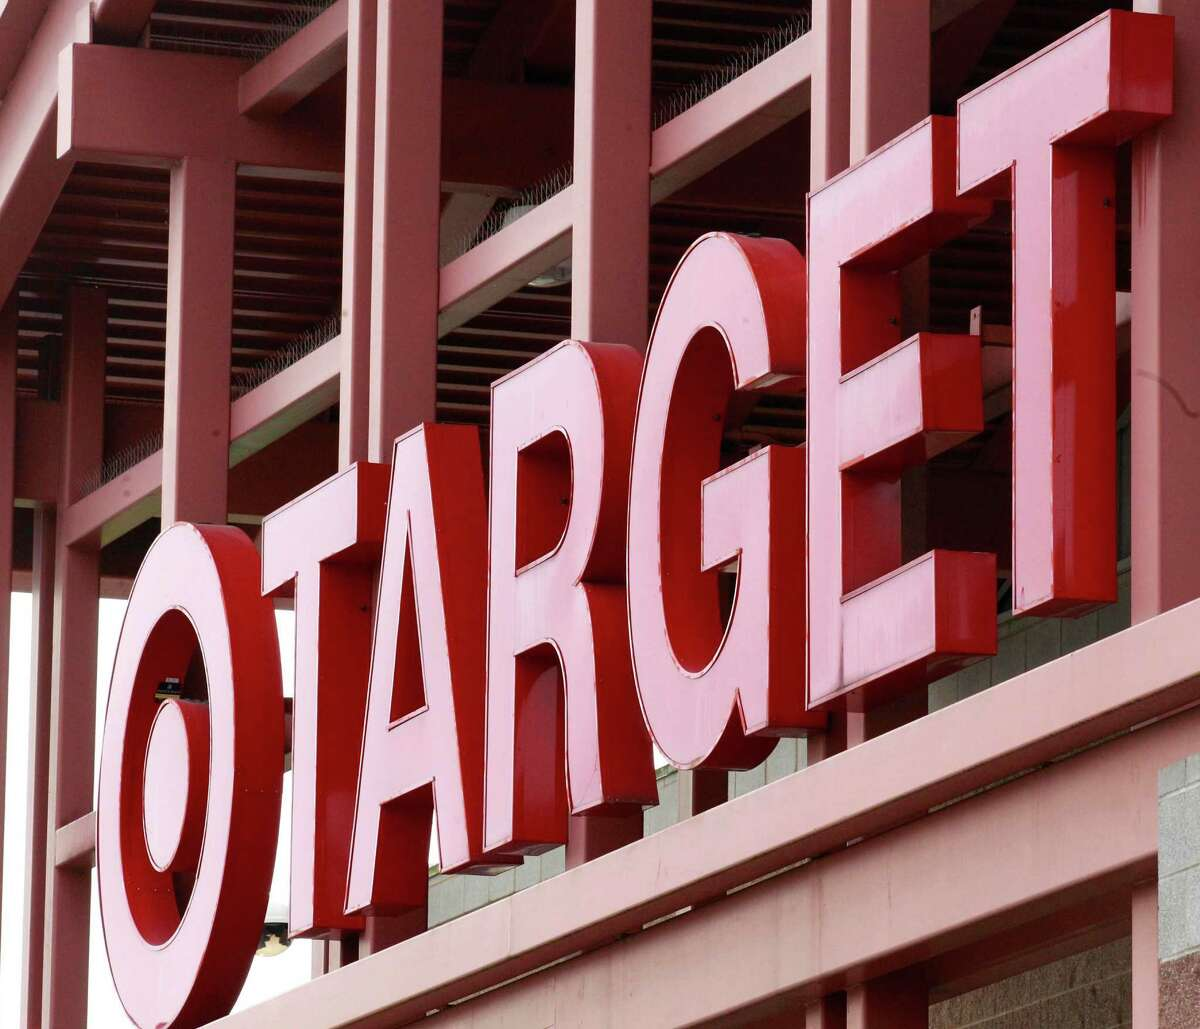 FILE - This Tuesday, May 17, 2011, file photo, shows a Target sign on the front of a Target Store, in Wilsonville, Ore. Target announced Monday, June 15, 2015, that it is selling its pharmacy and clinic businesses to the drugstore chain CVS Health for about $1.9 billion in a deal that combines the resources of two retailers seeking to polish their reputations as health care providers. (AP Photo/Rick Bowmer, File)